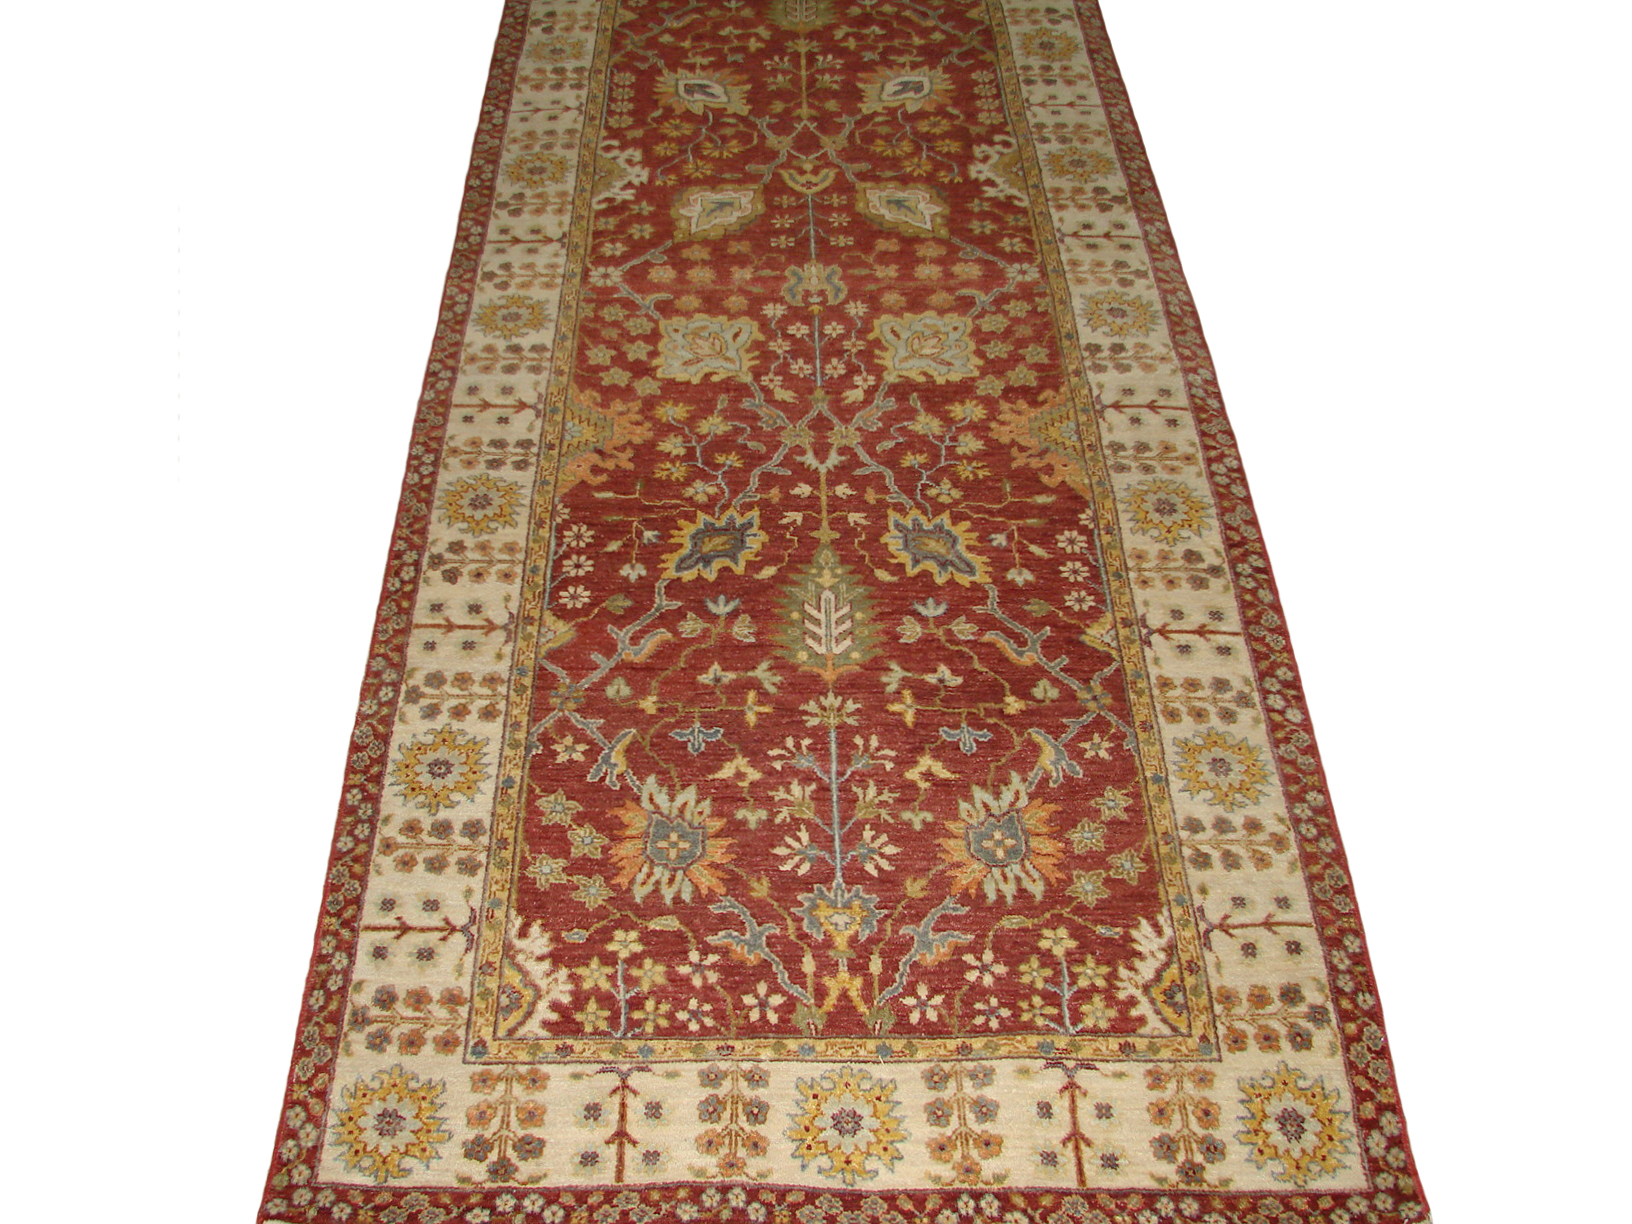 Wide Runner Traditional Hand Knotted Wool Area Rug - MR20481